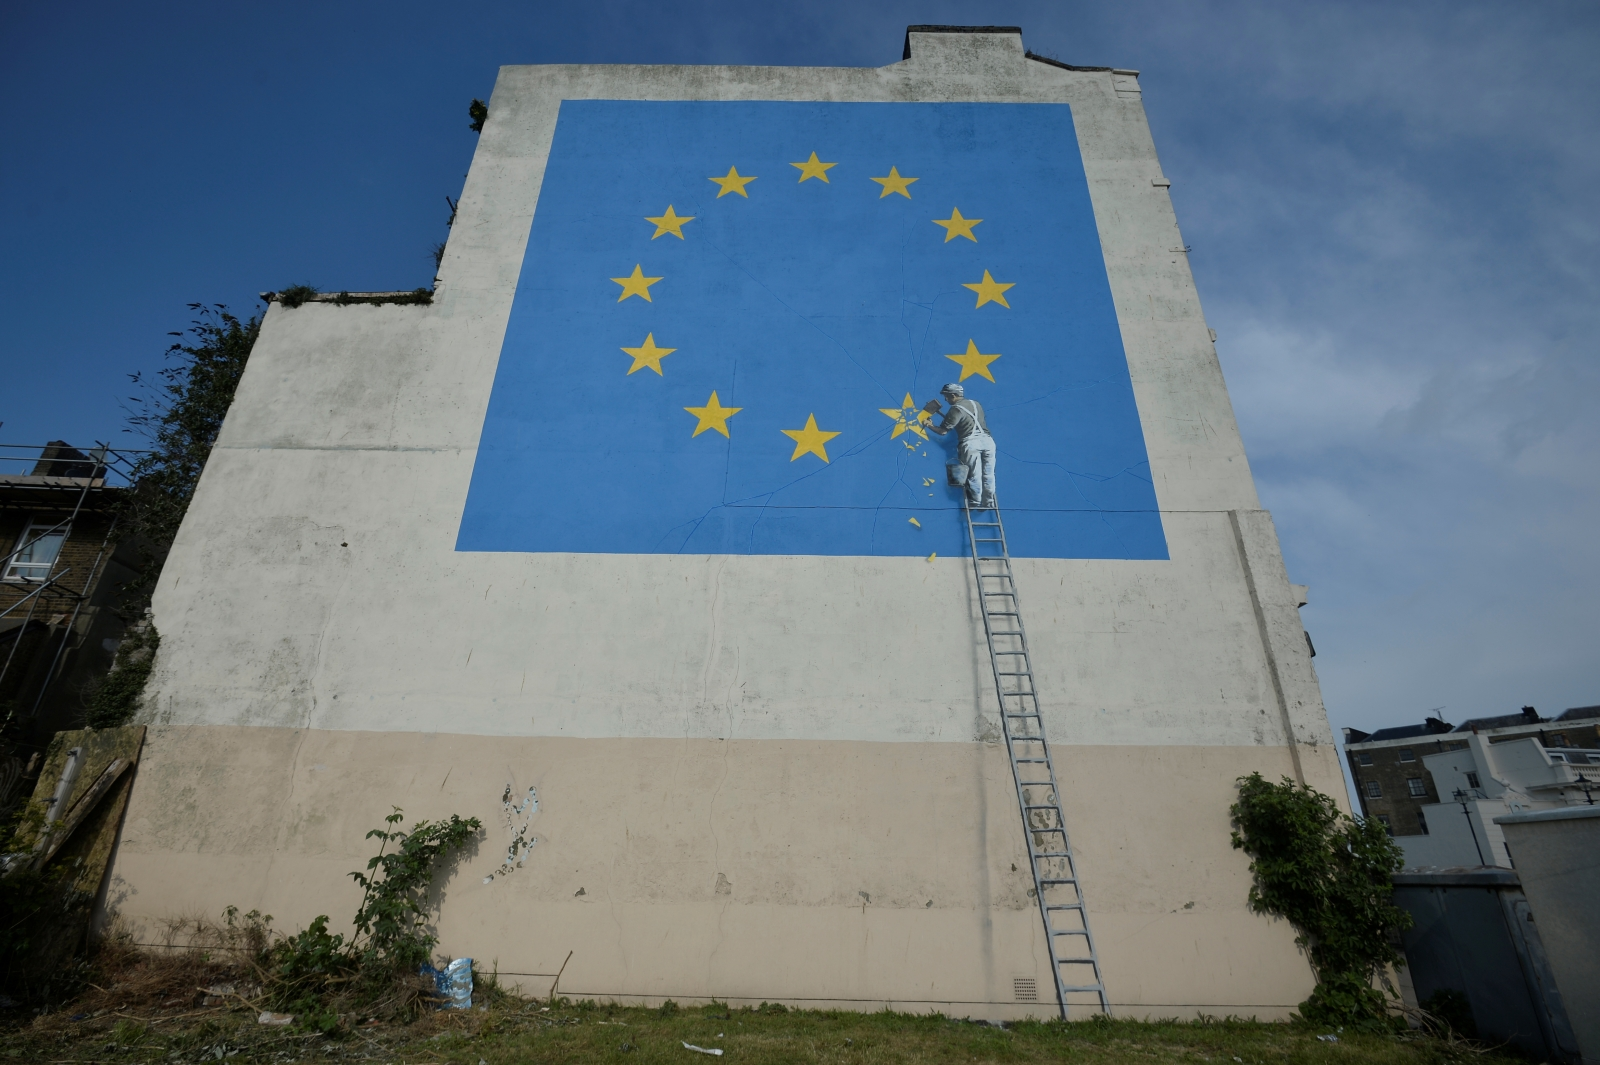 Banksy EU flag artwork